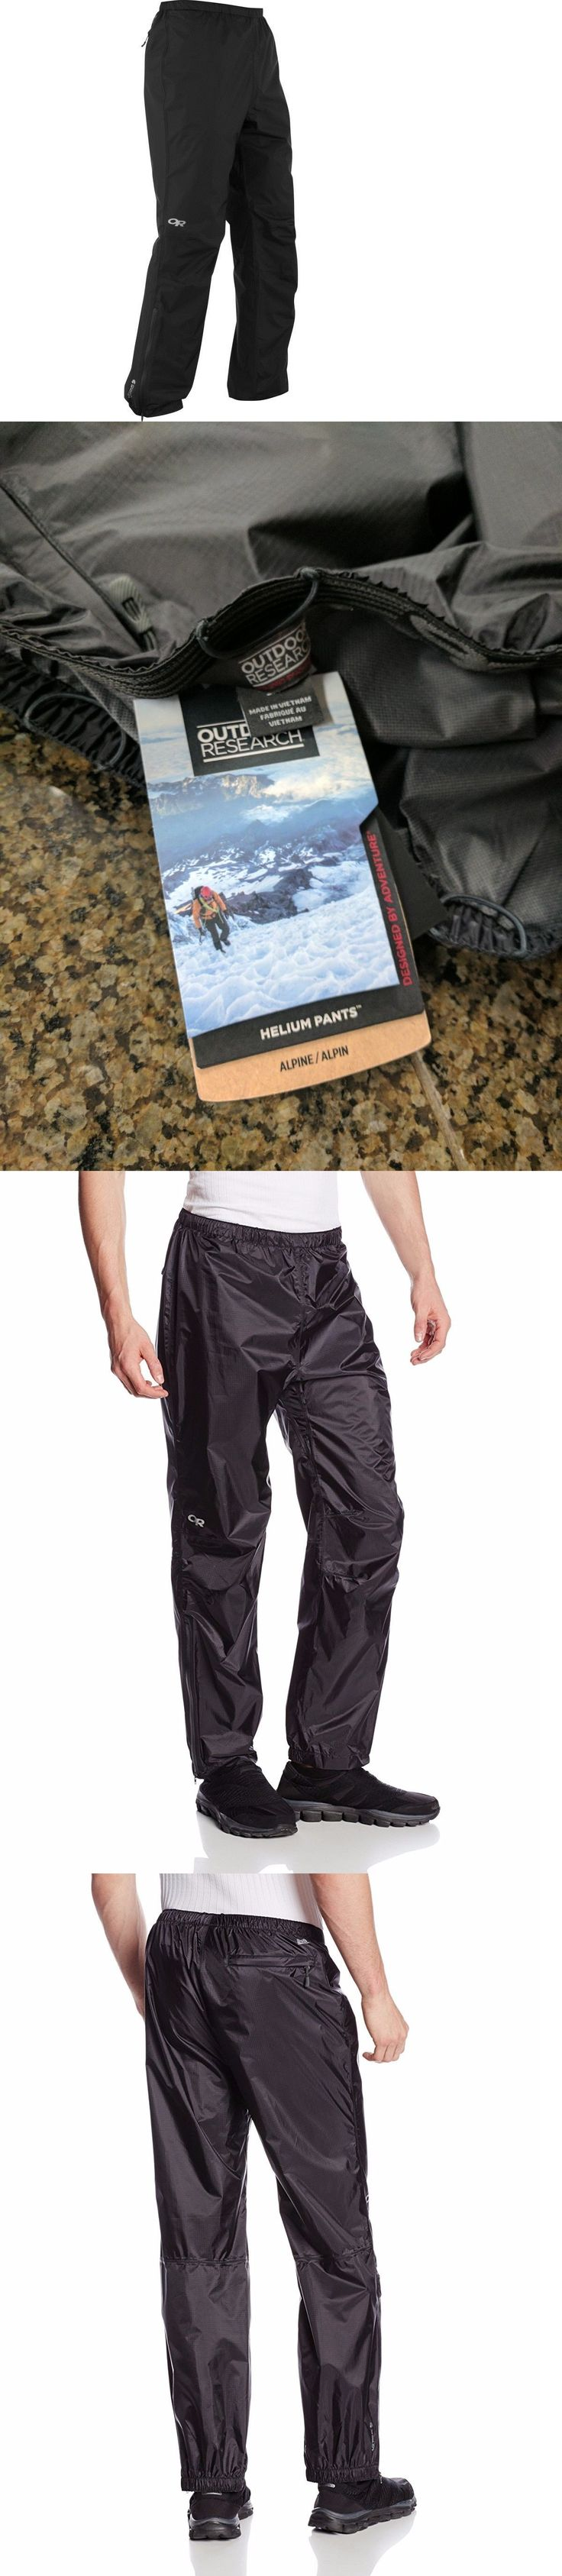 Snow Pants and Bibs 36261: Outdoor Research Helium Waterproof Rain Pants - Mens Small (S) - Black - New BUY IT NOW ONLY: $79.0